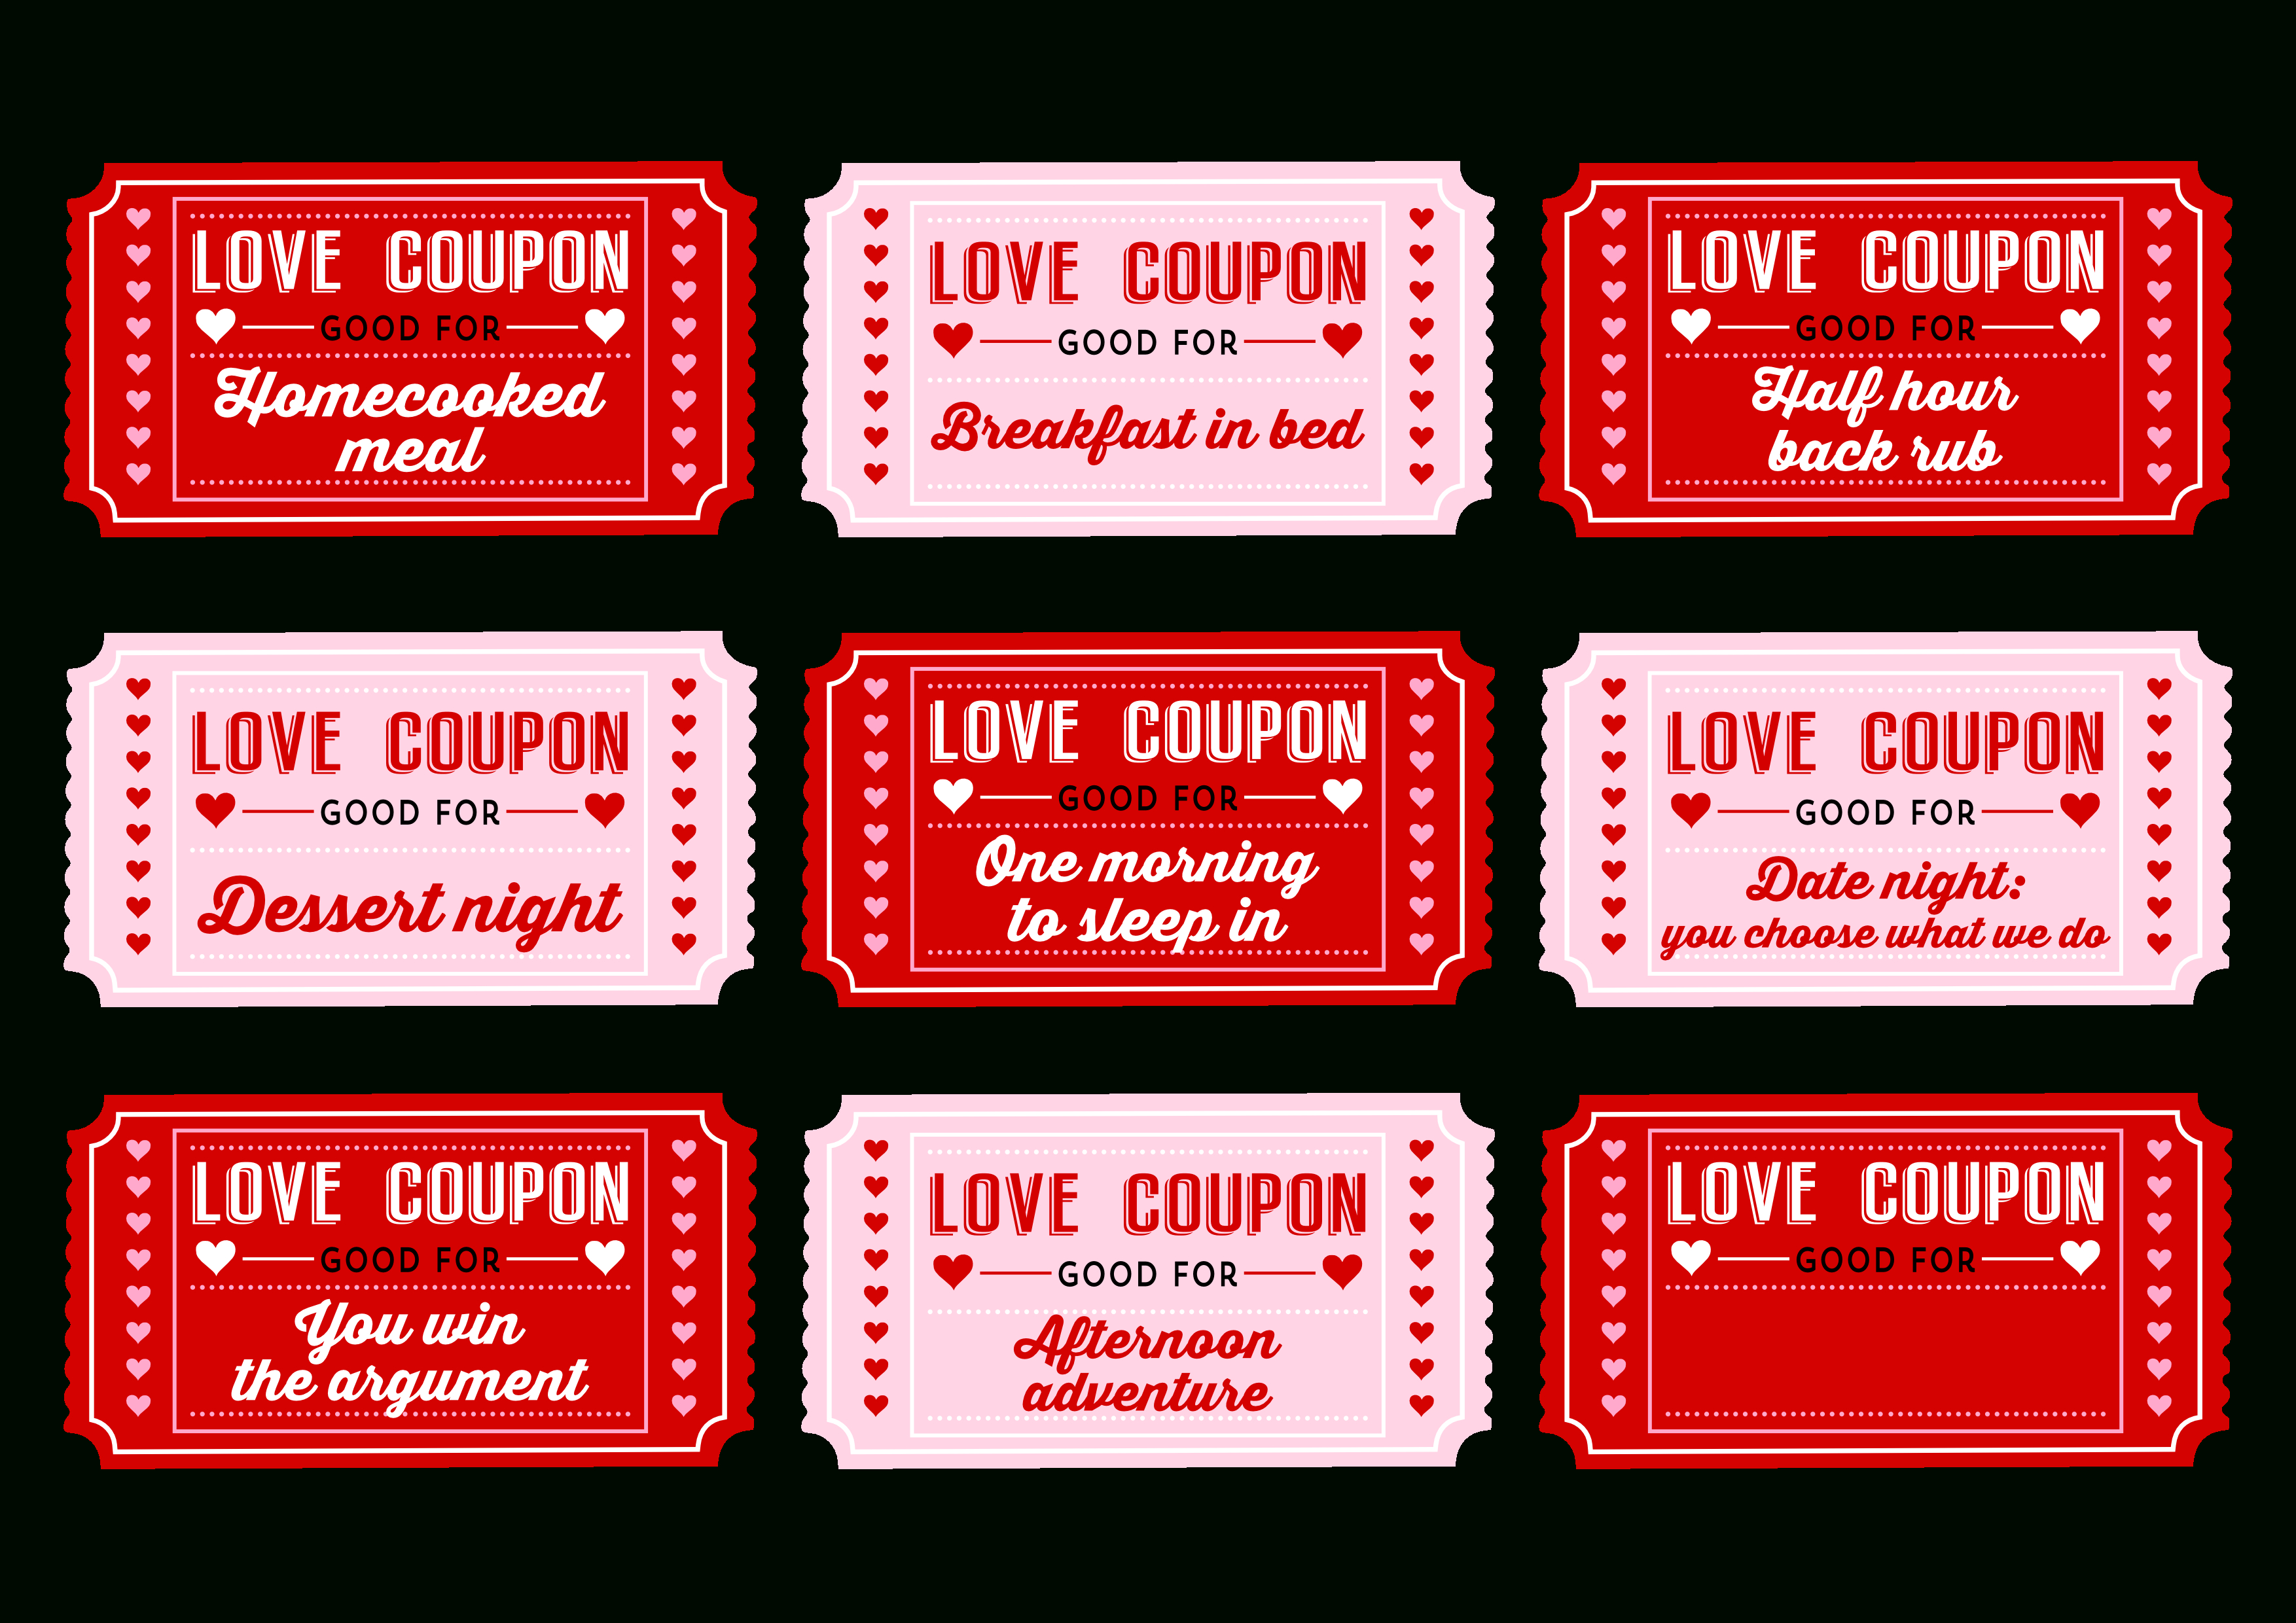 Free Printable Love Coupons For Couples On Valentine's Day! | Catch - Free Printable Love Coupons